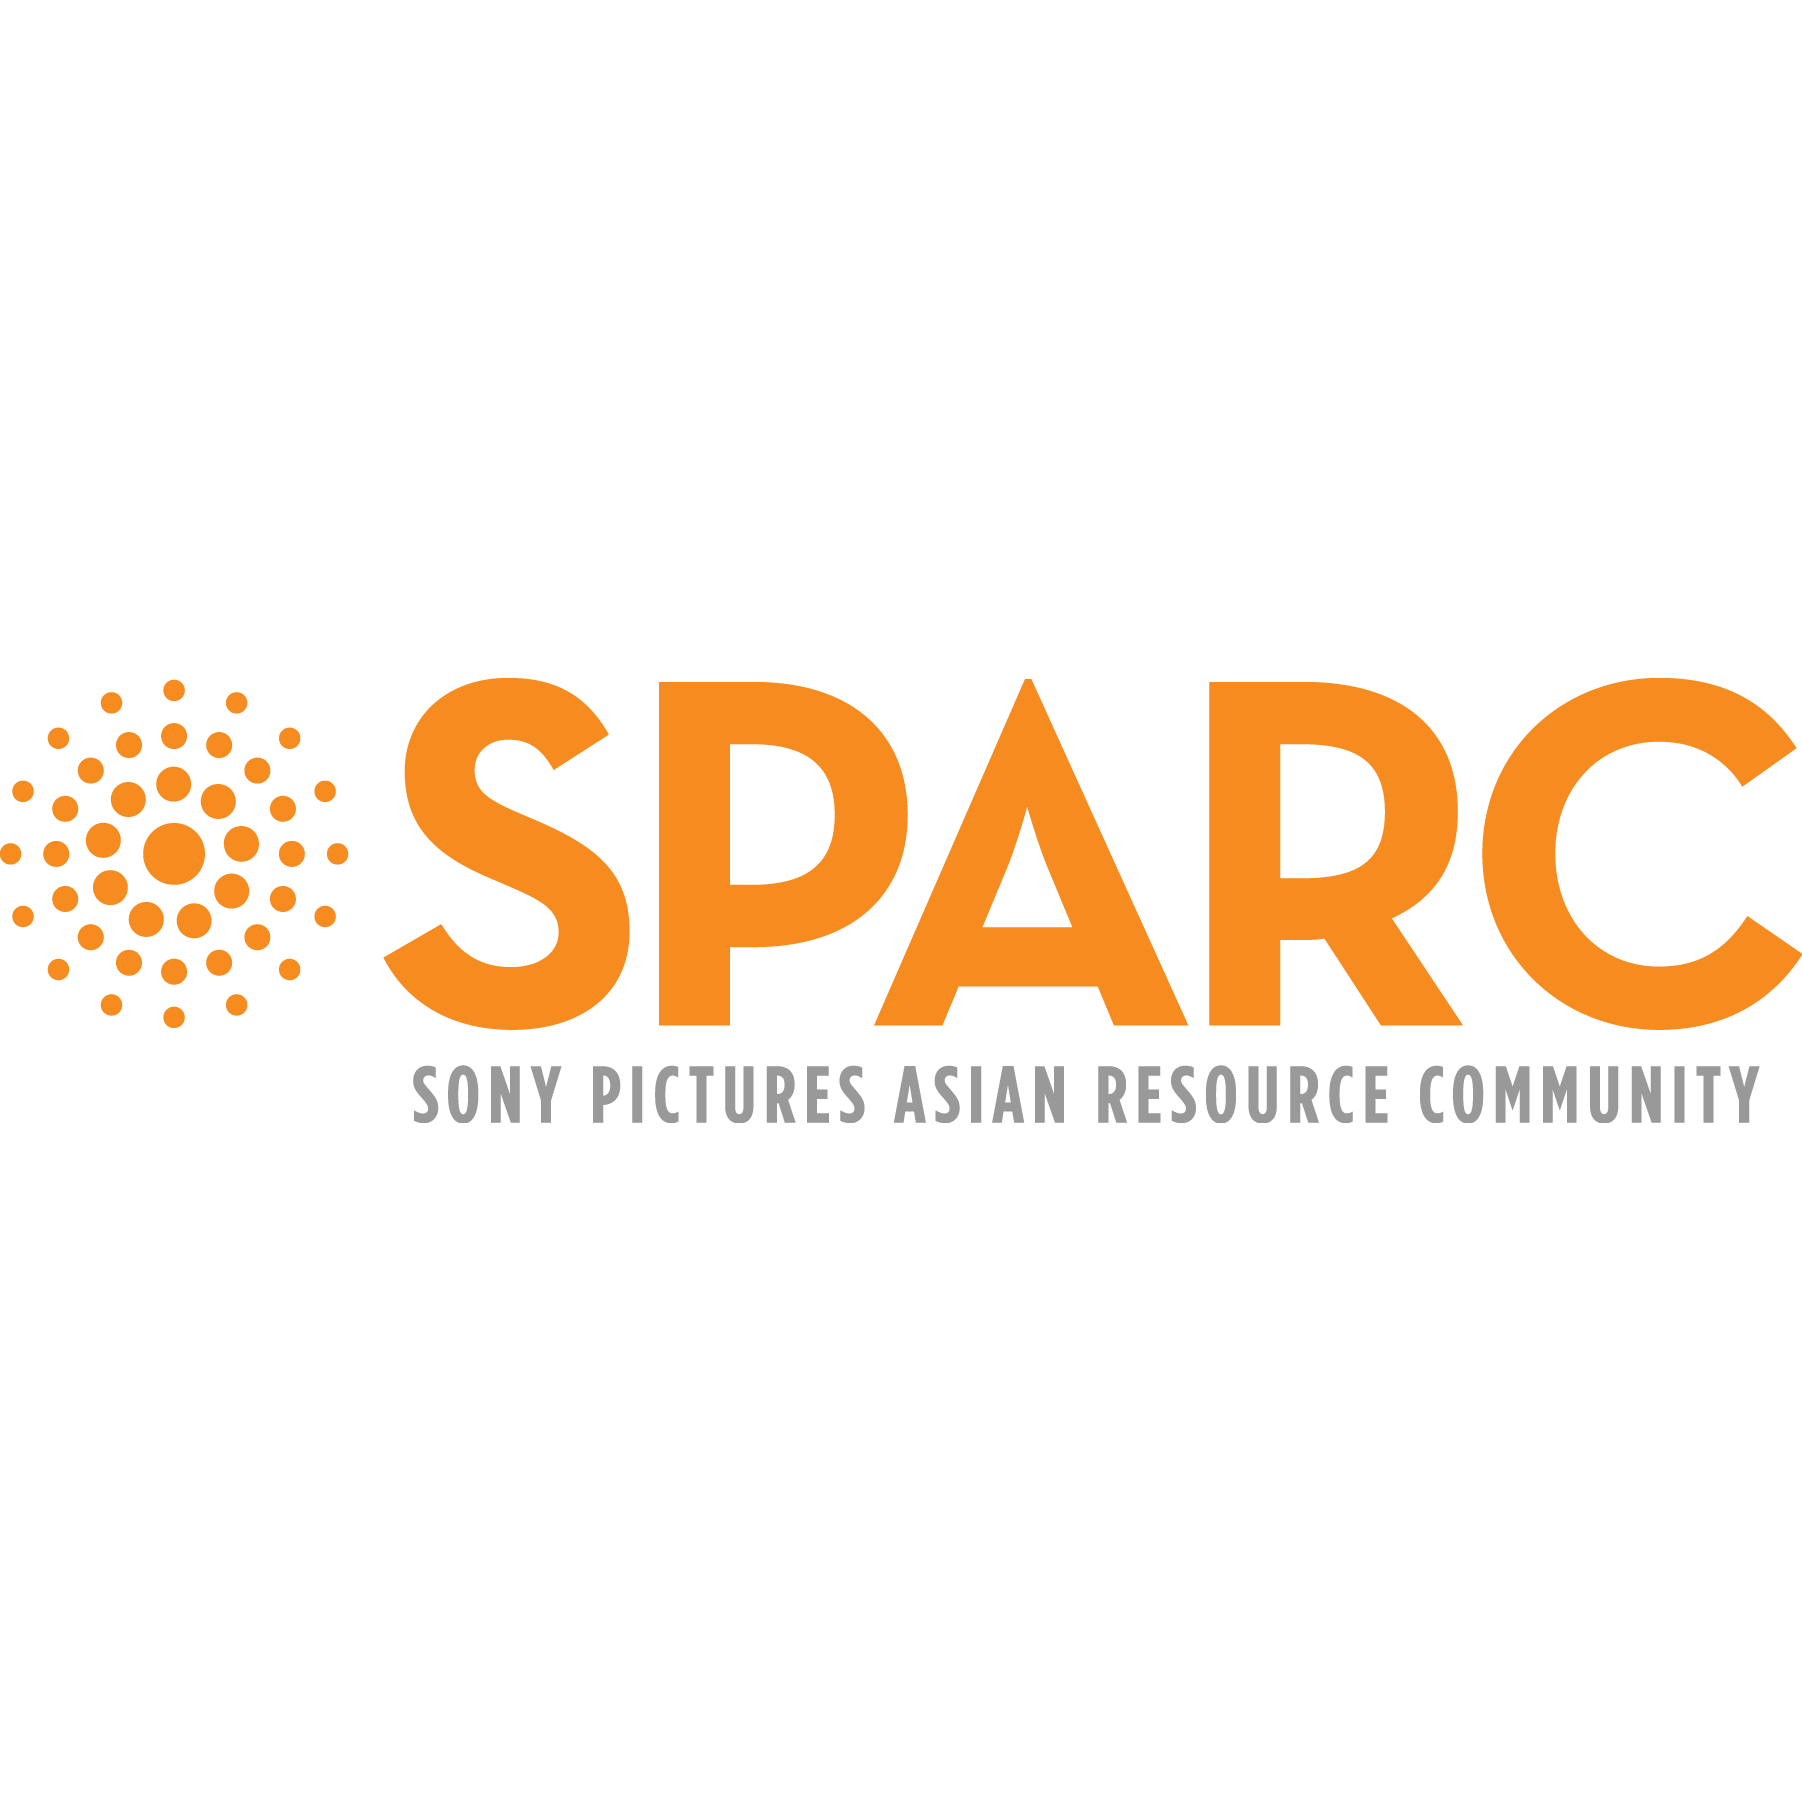 Sony Pictures Asian Resource Community